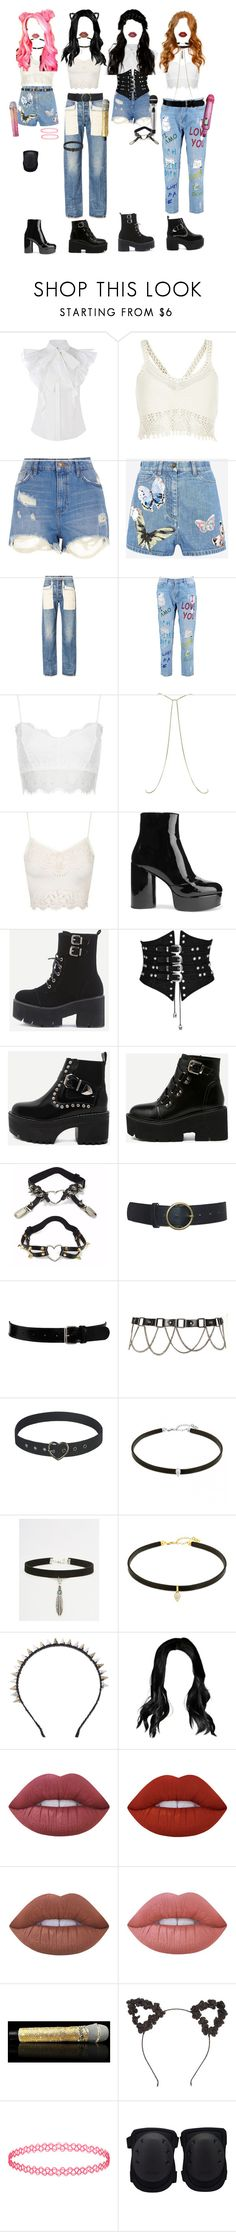 """""""[ live ] G-3 _ MY LOVE ( goodbye stage )"""" by xxeucliffexx ❤ liked on Polyvore featuring River Island, Valentino, Helmut Lang, Boohoo, Topshop, Marc Jacobs, WithChic, Raina, Black & Brown London and ASOS"""